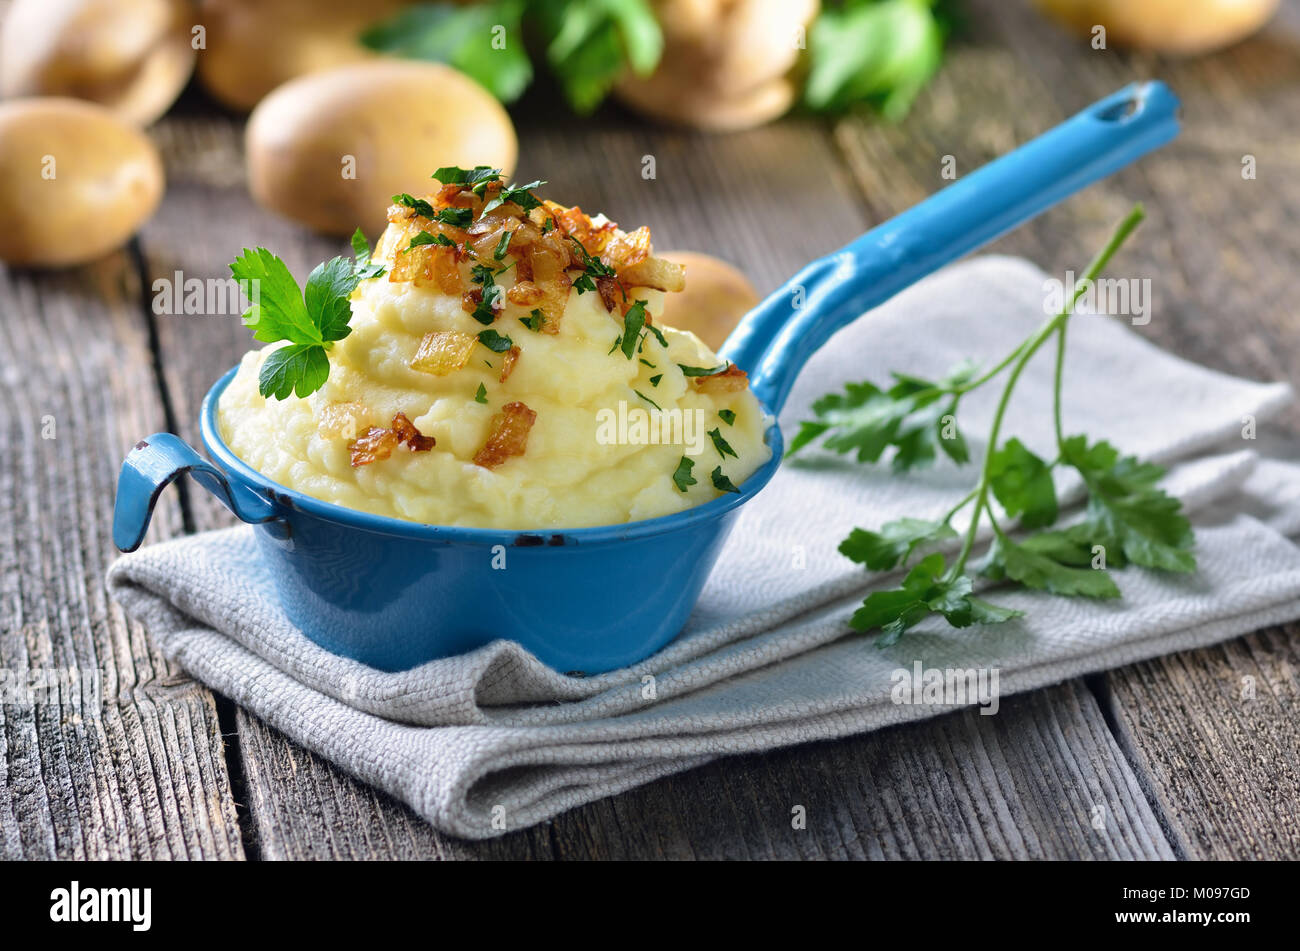 Fresh potato puree with roasted onions in an old enamel coated pot - Stock Image